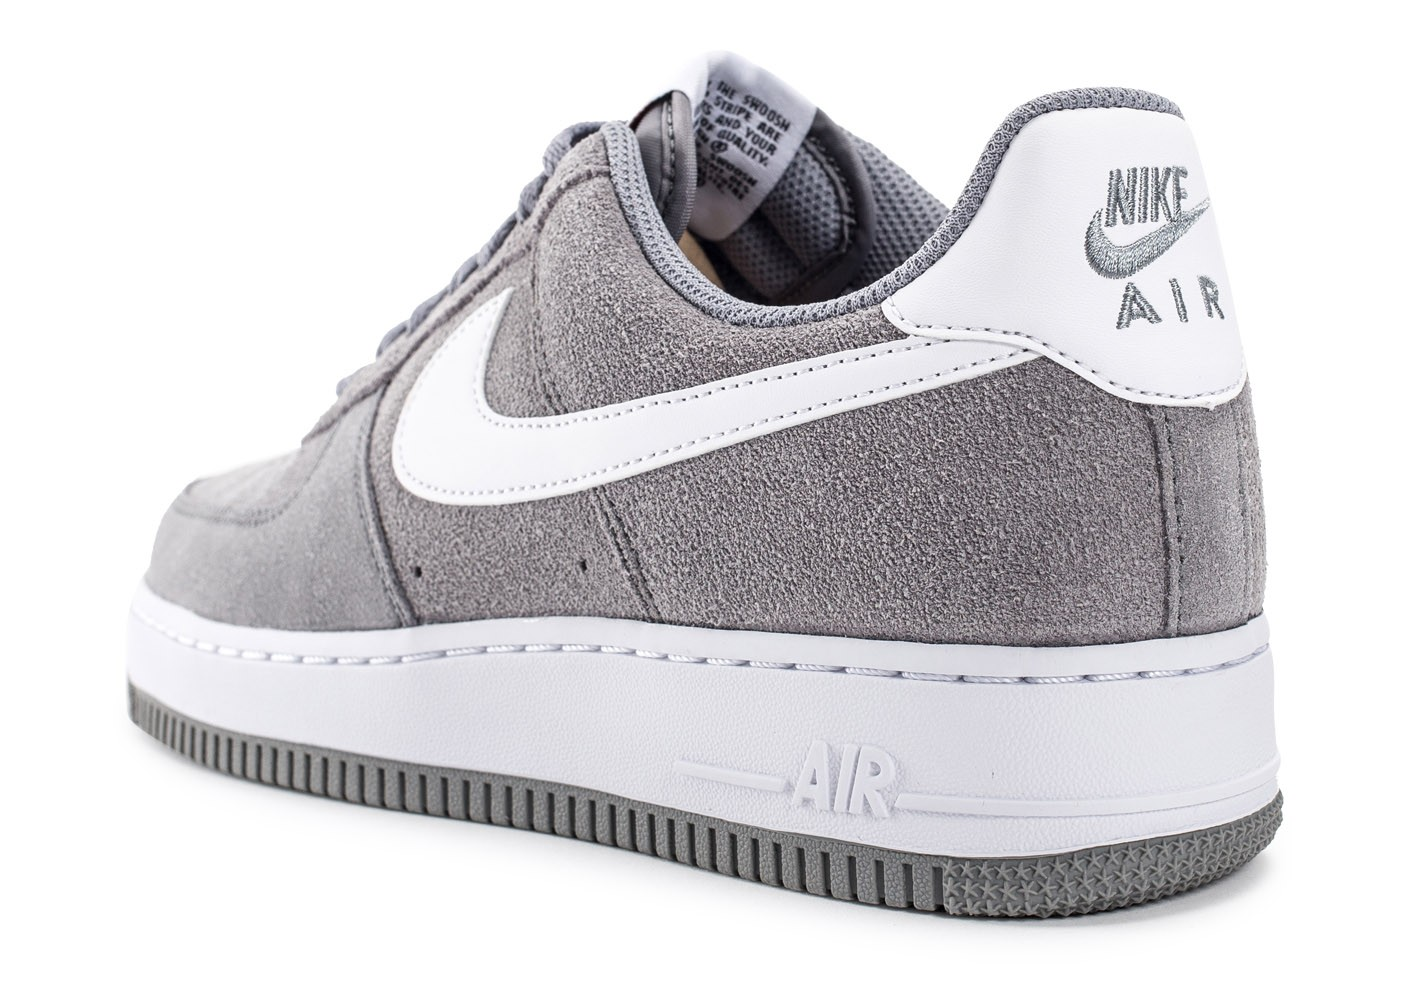 Nike Air Force 1 Suede grise - Chaussures Baskets homme - Chausport